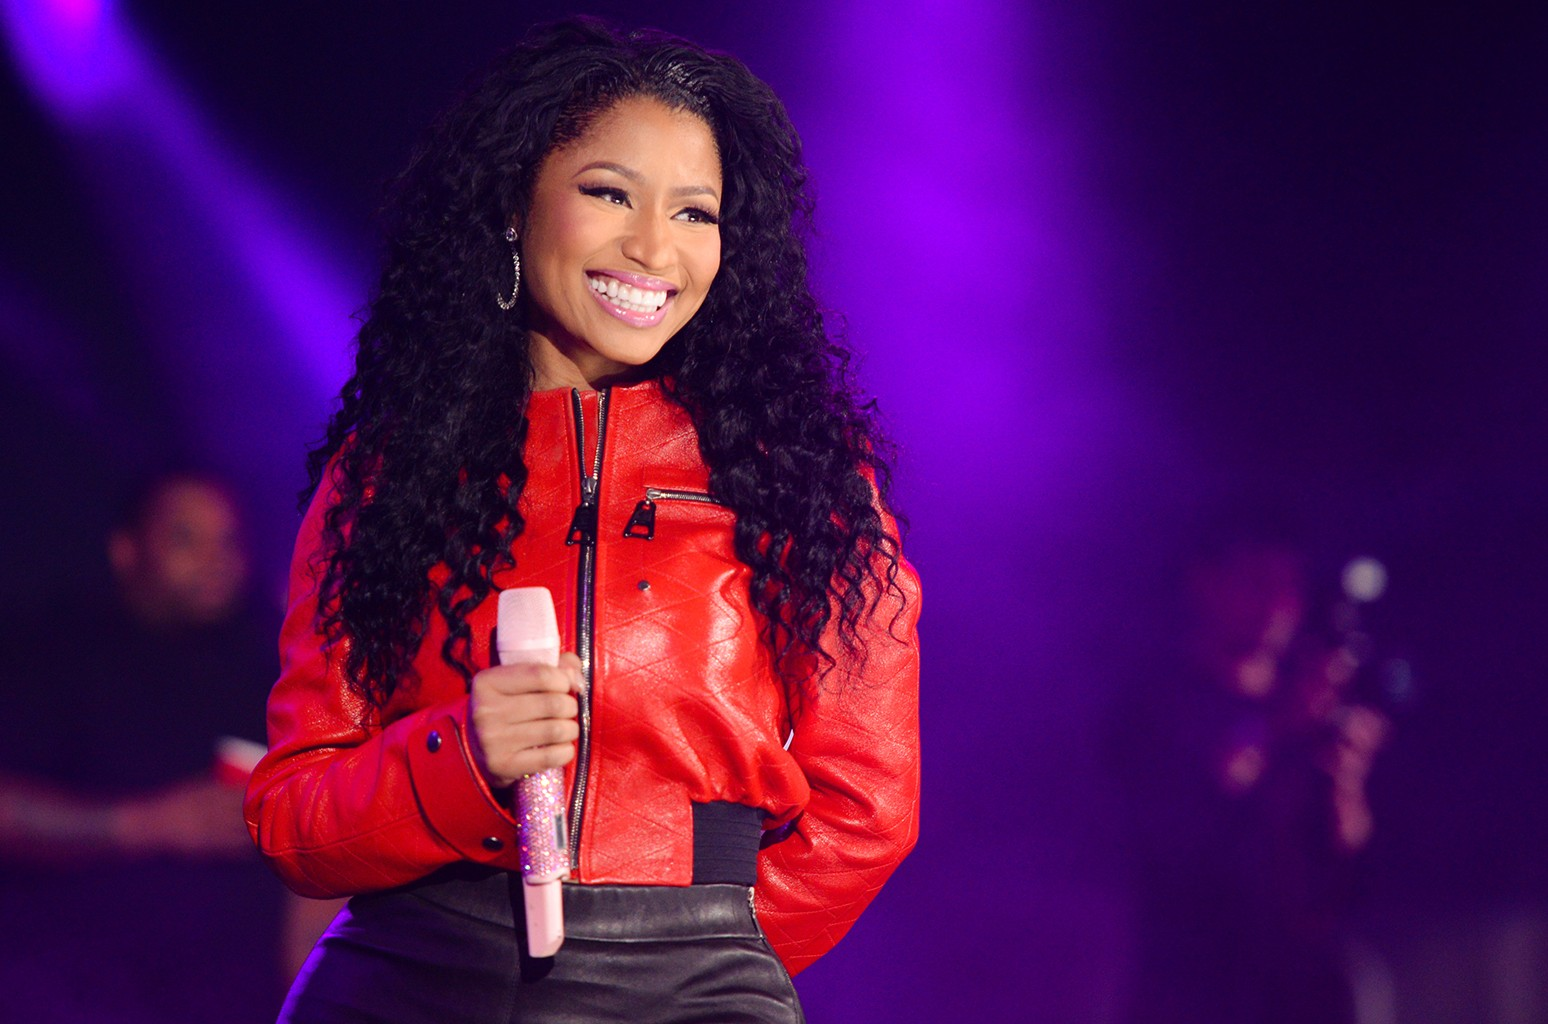 Nicki Minaj performs at MetLife Stadium